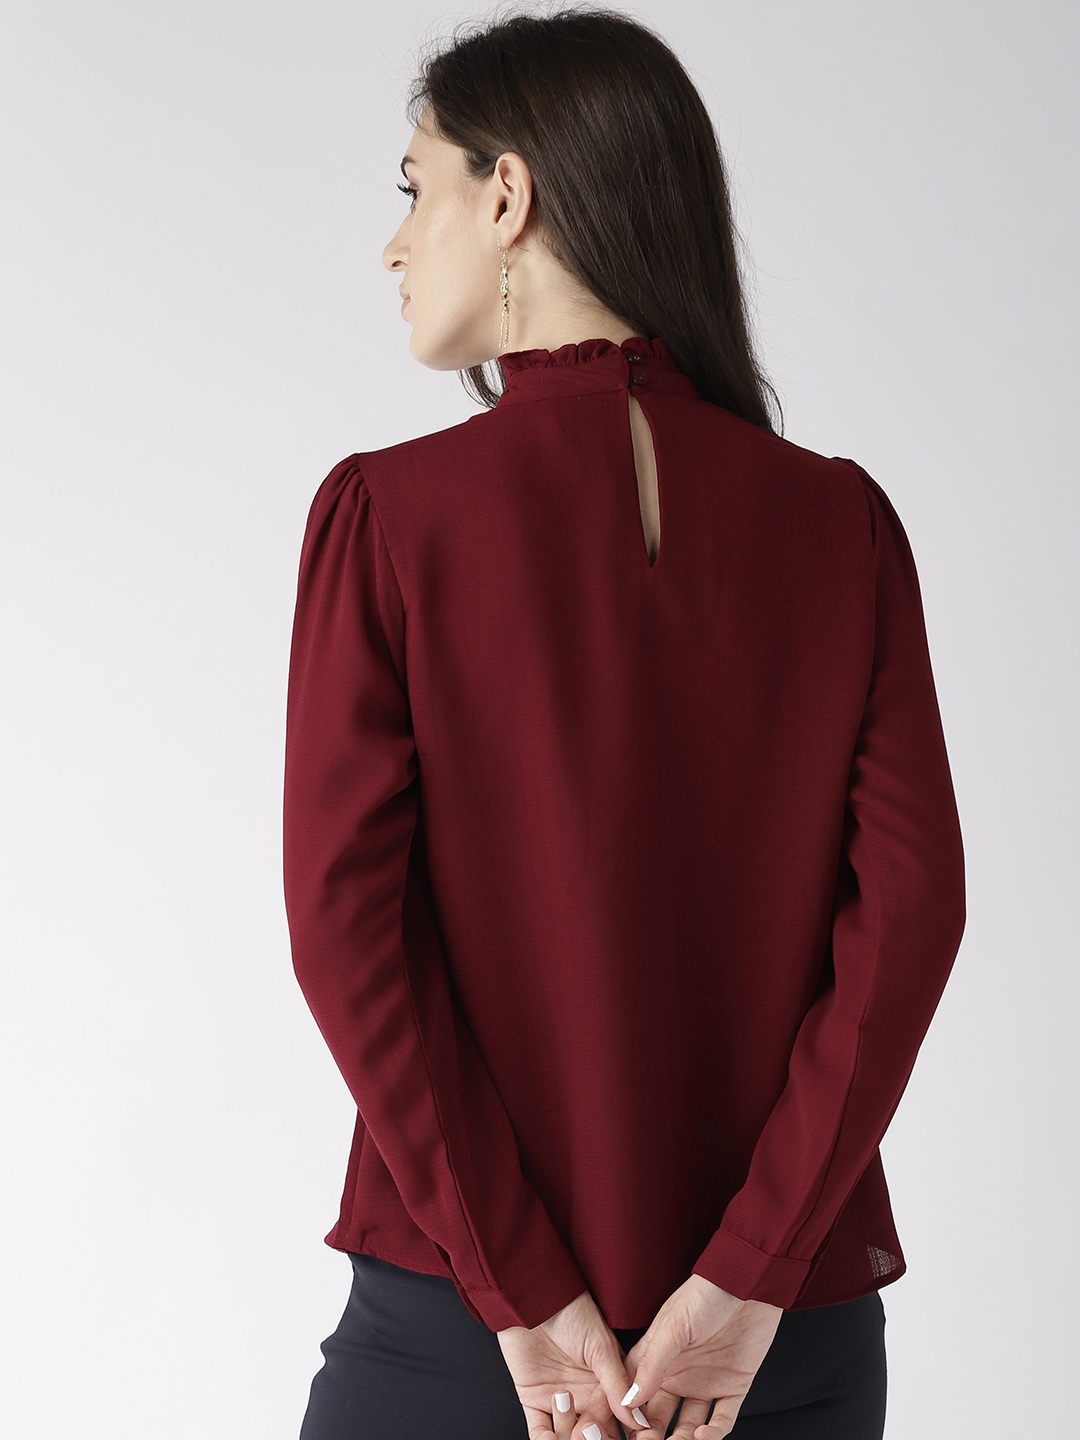 Tops-The New Look Maroon Top3